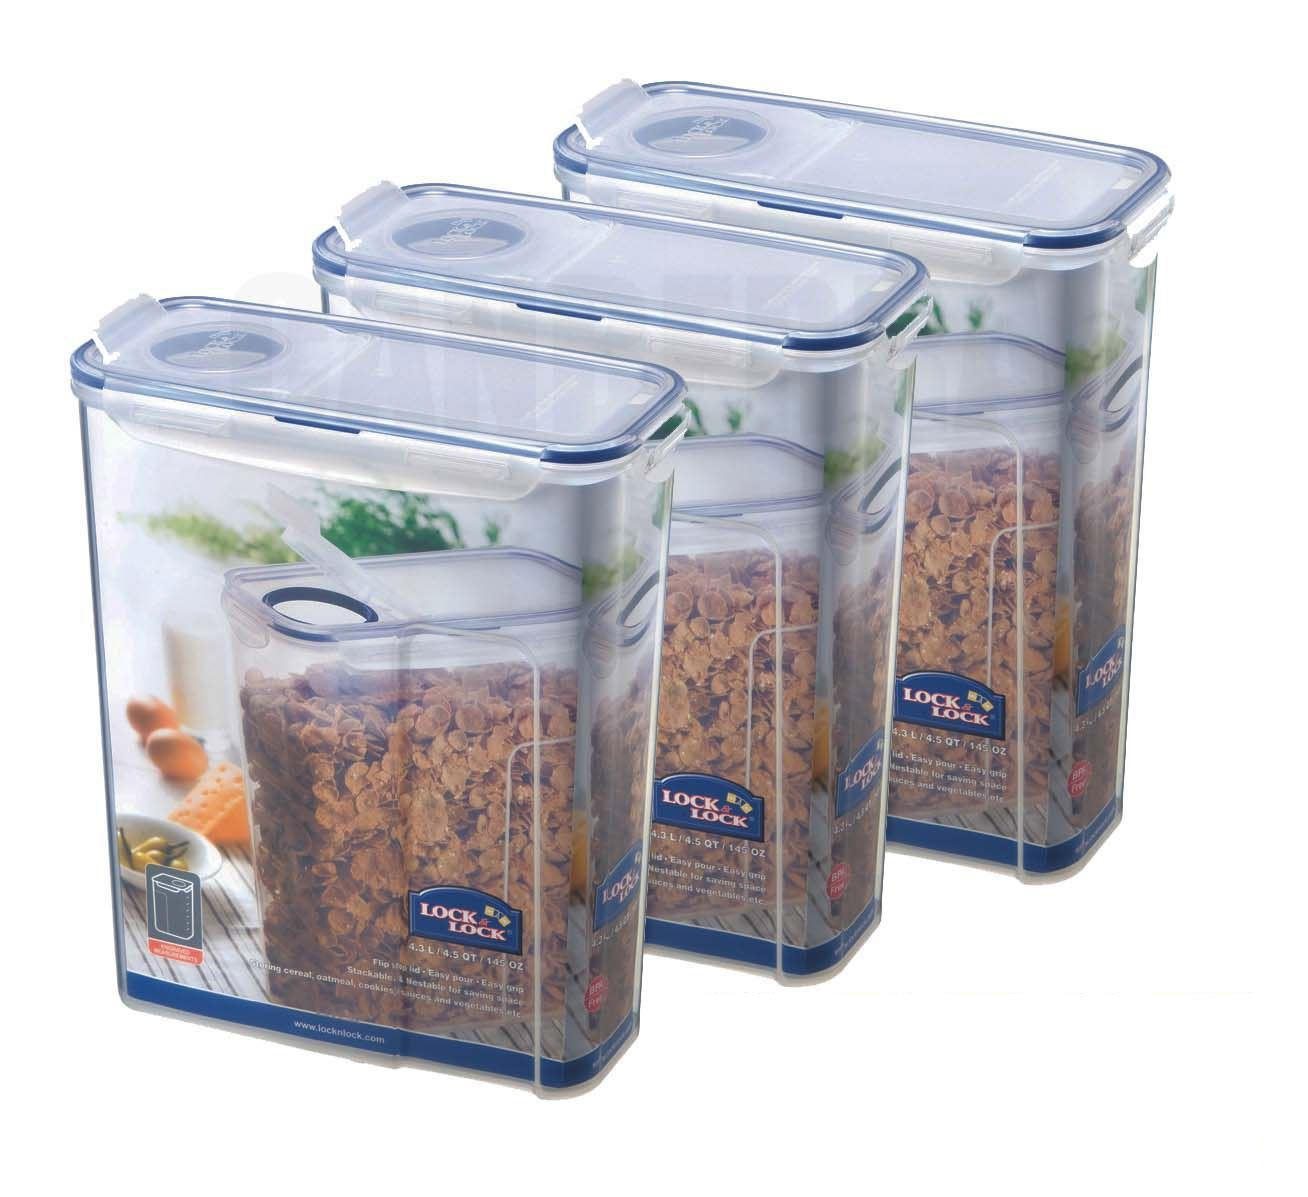 3 x LOCK LOCK CEREAL PASTA FOOD STORAGE CONTAINER 43L HPL714F